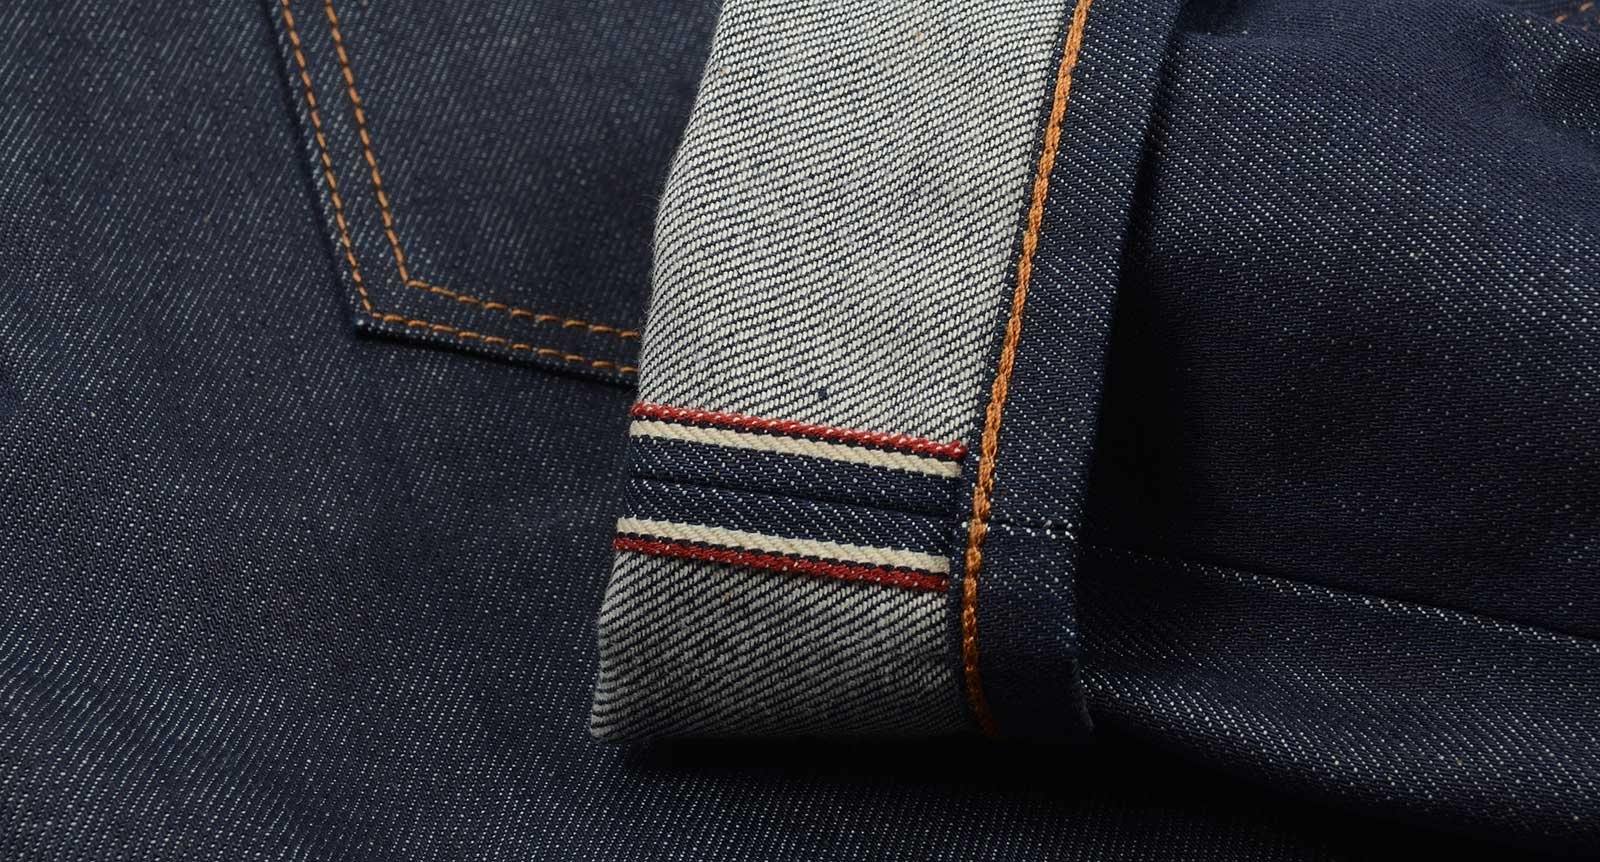 ximpostor-skinny-raw-selvedge-denim-indigo.jpg.pagespeed.ic.m_lwhSGxa0